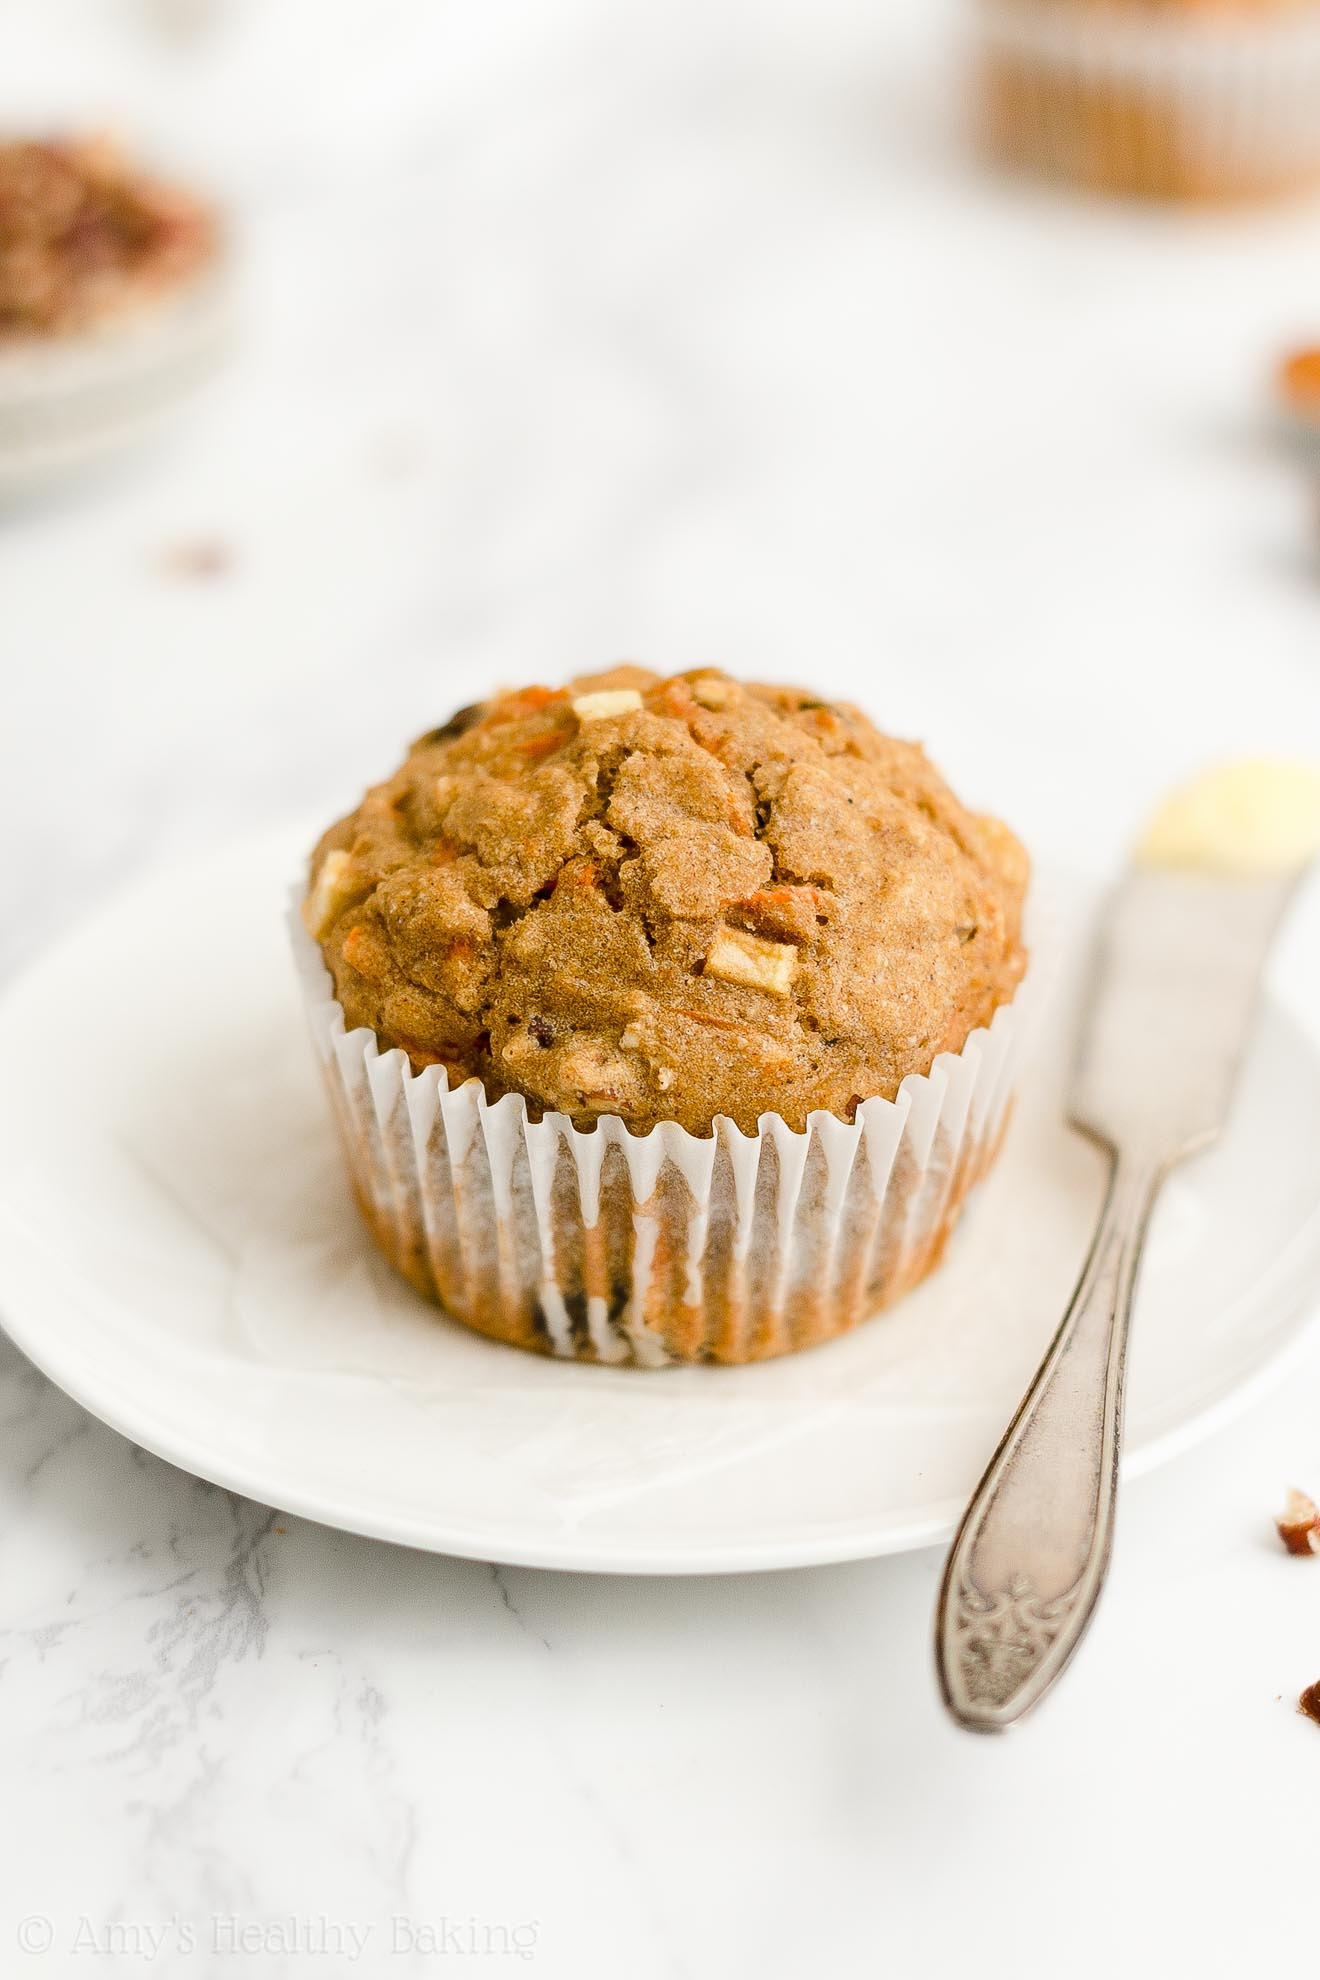 Best Easy Healthy Low Fat No Sugar Greek Yogurt Morning Glory Oatmeal Muffins